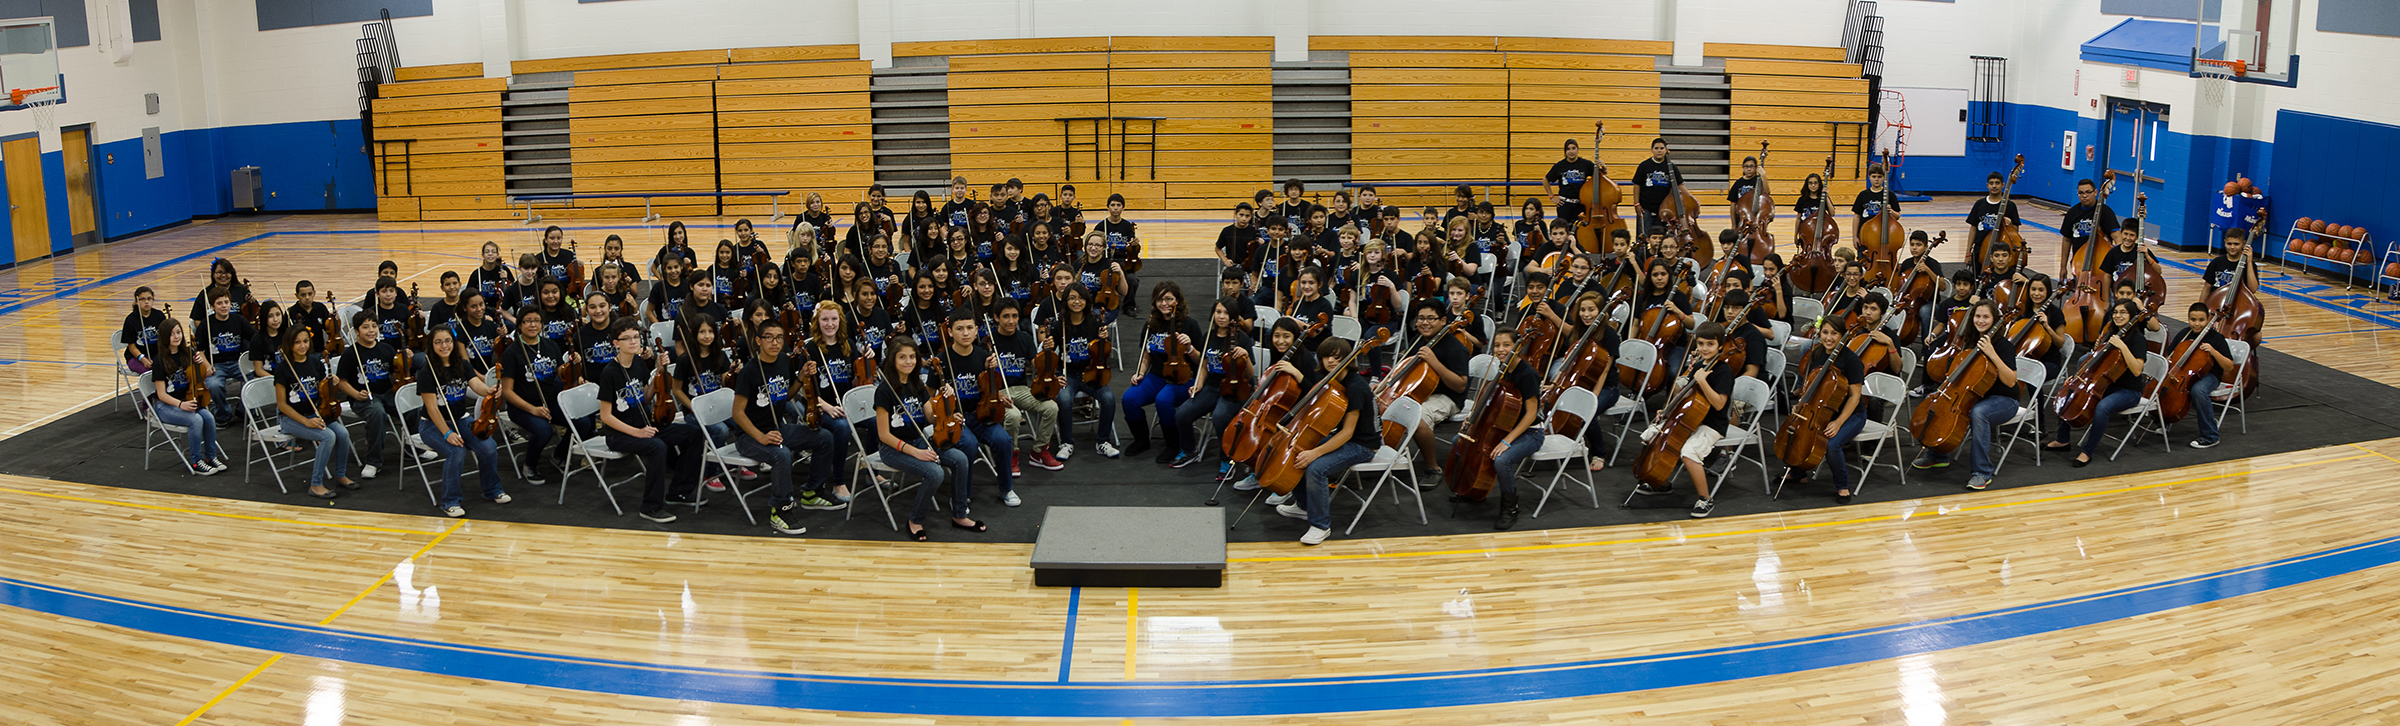 Orchestra program finds its place in HCISD middle schools